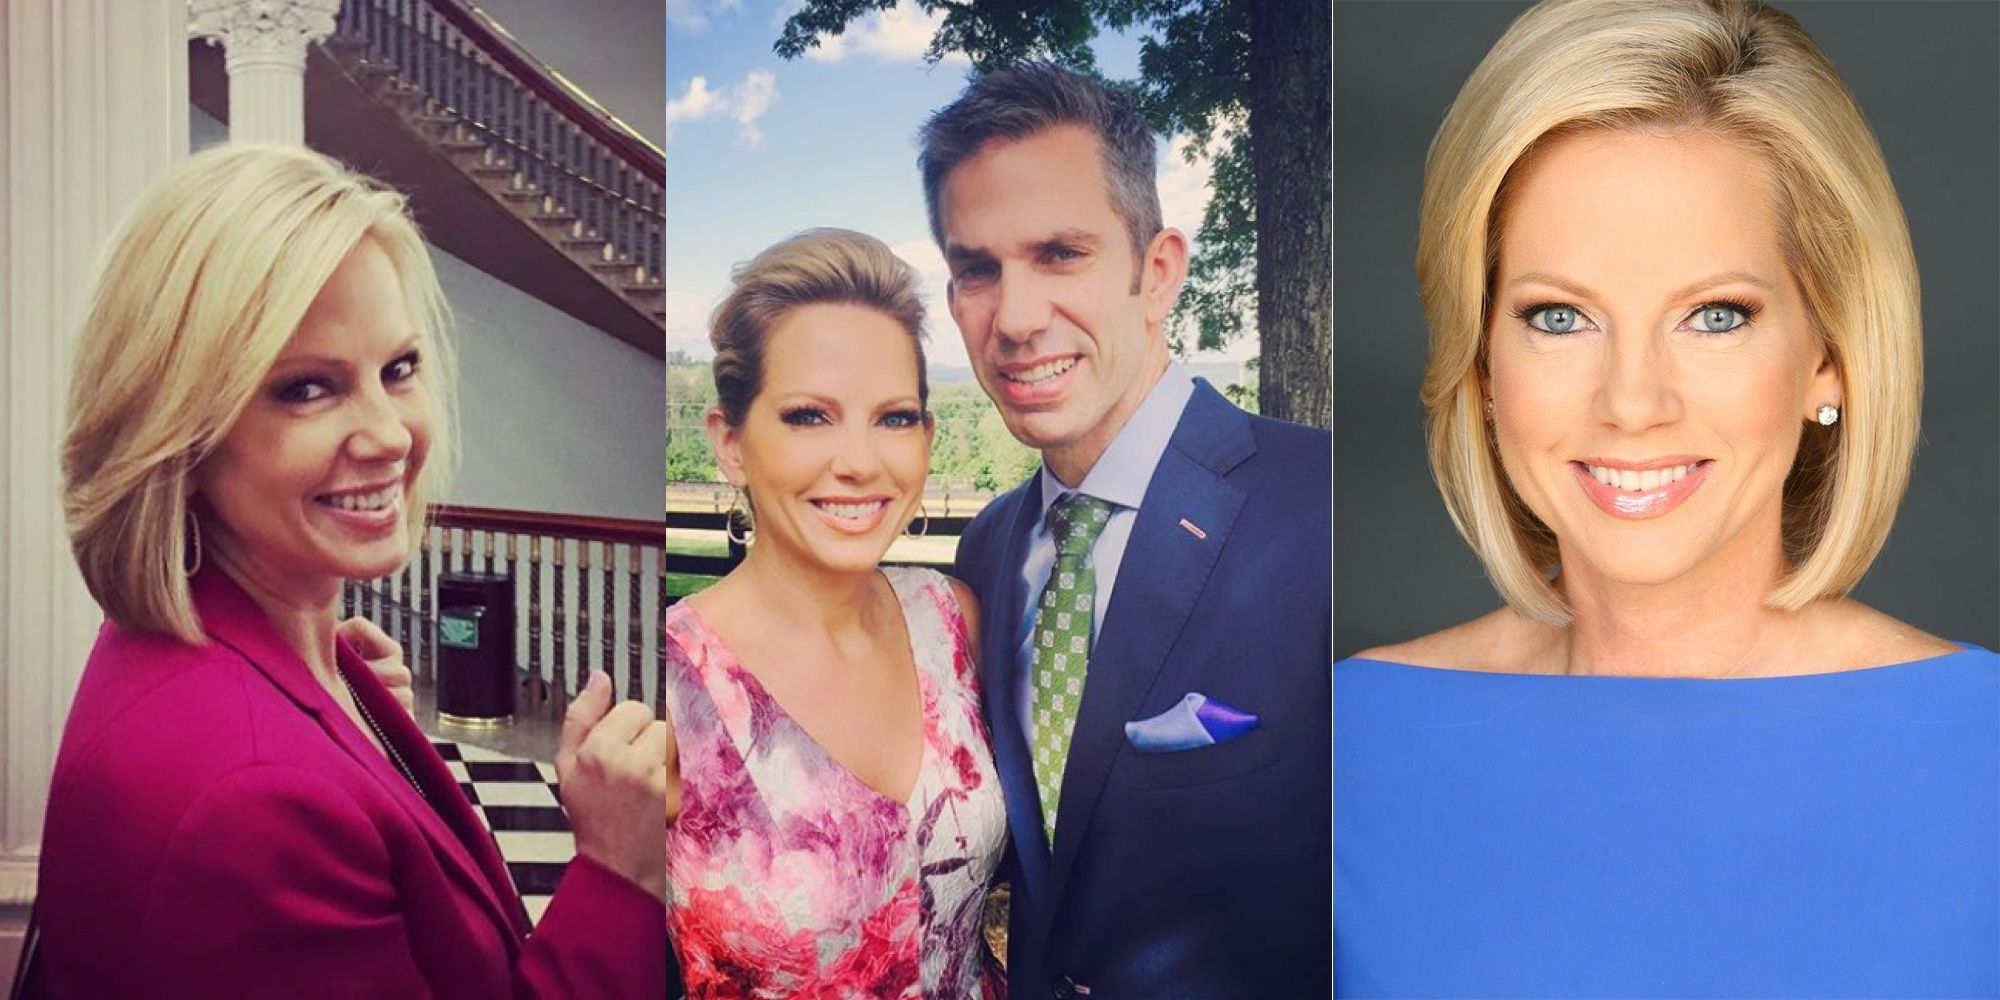 Fox News Shannon Bream Opens Up About Chronic Eye Pain Diagnosis